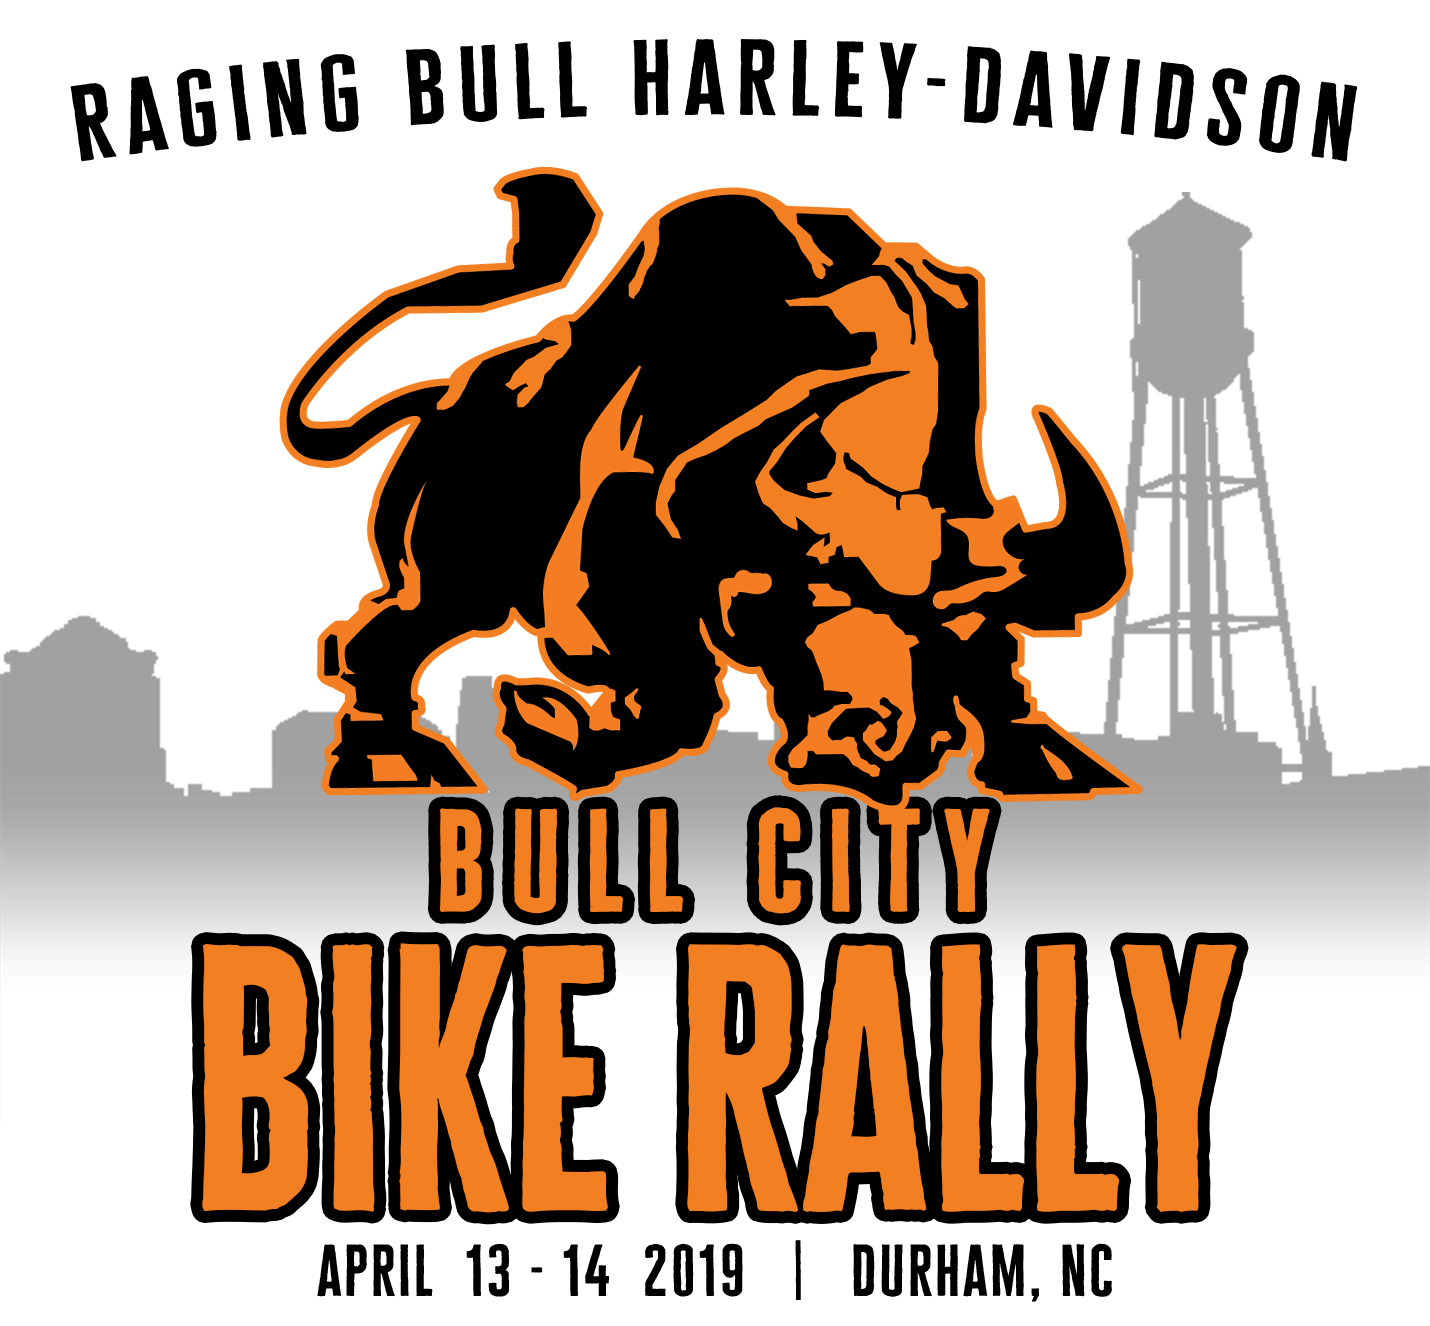 Bull City Bike Rally